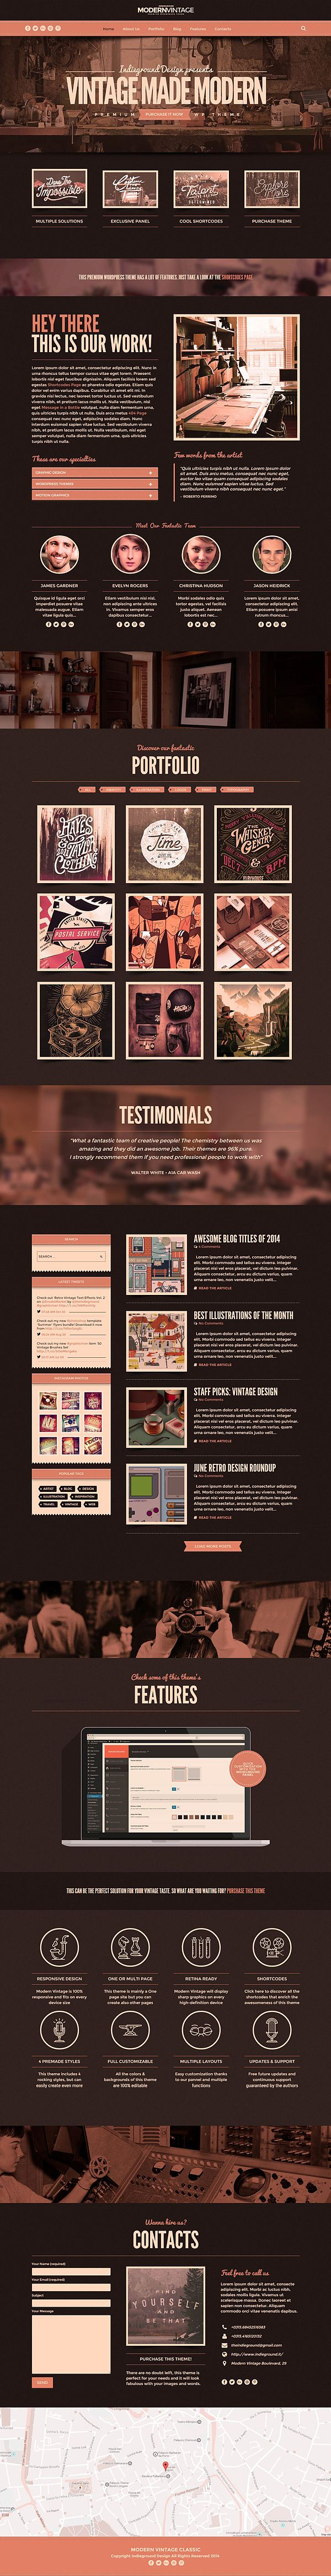 pinterest.com/fra411 #webdesign - Modern Vintage Wordpress Theme on Behance